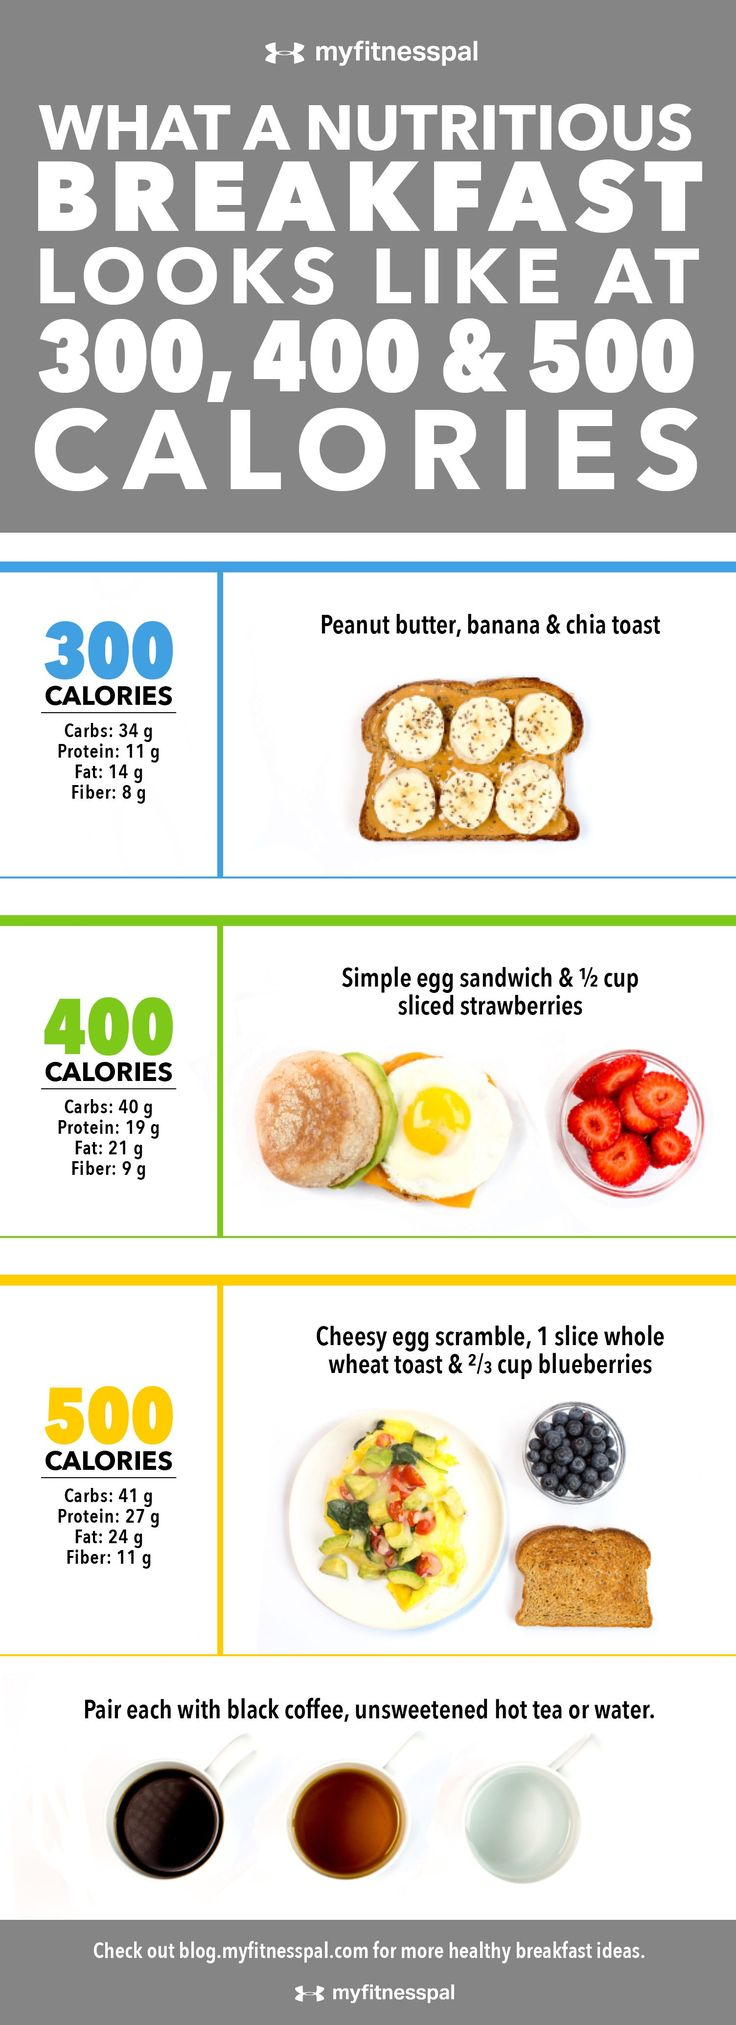 What a Nutritious Breakfast Looks Like at 300, 400 & 500 Calories [Infographic] | MyFitnessPal (eating healthy at work)